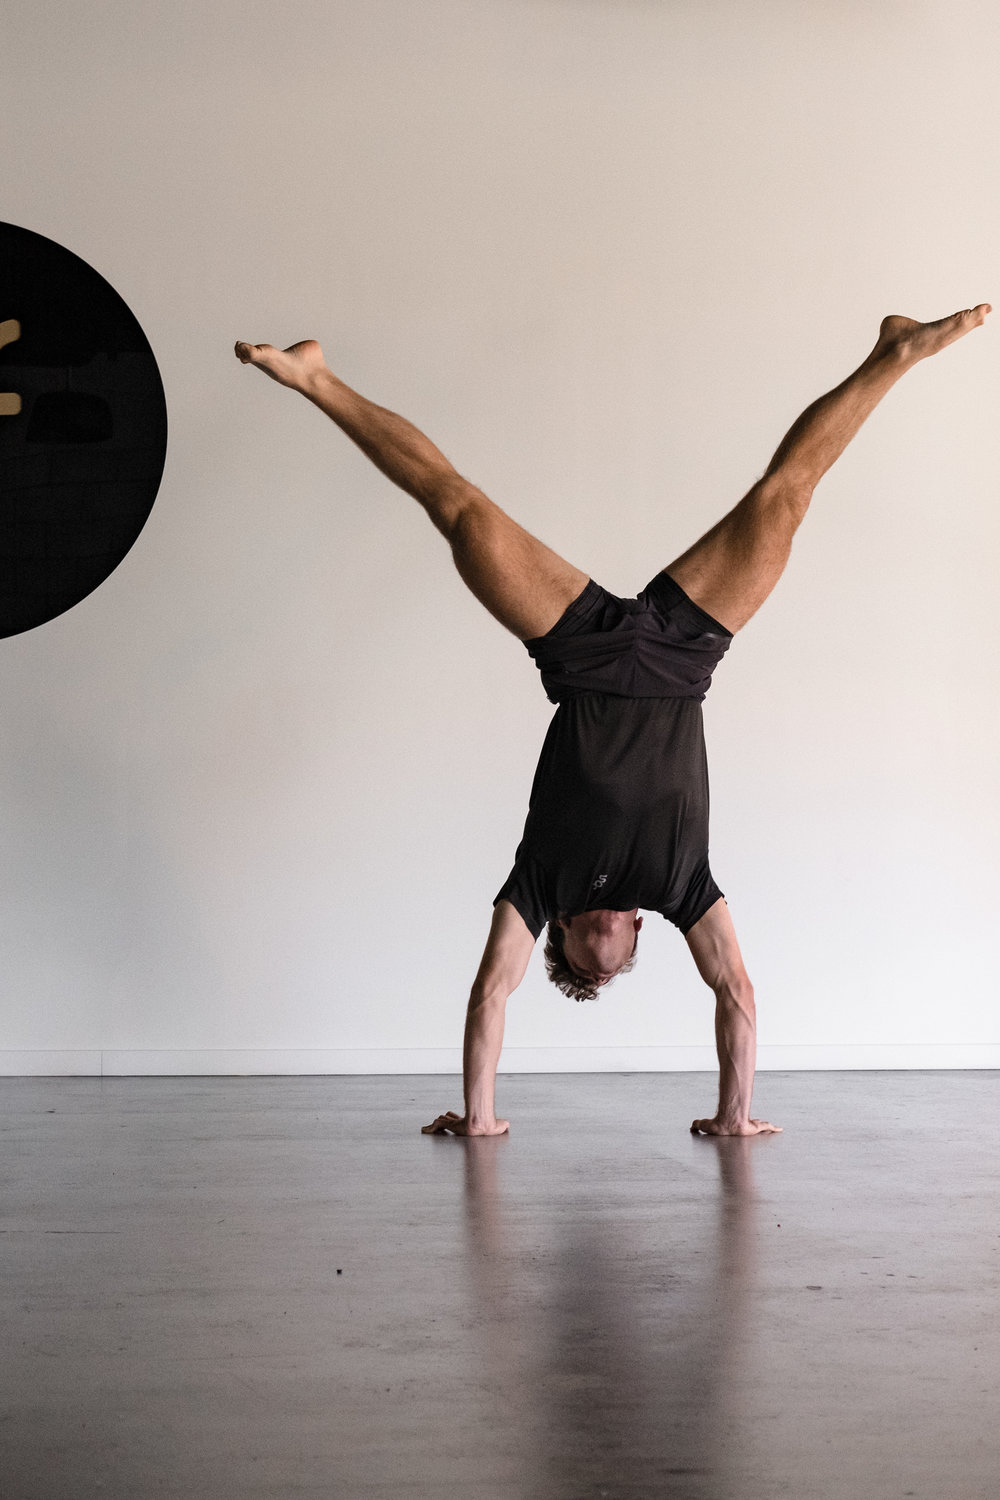 Handstand_Preparation_Training (38 of 38).jpg